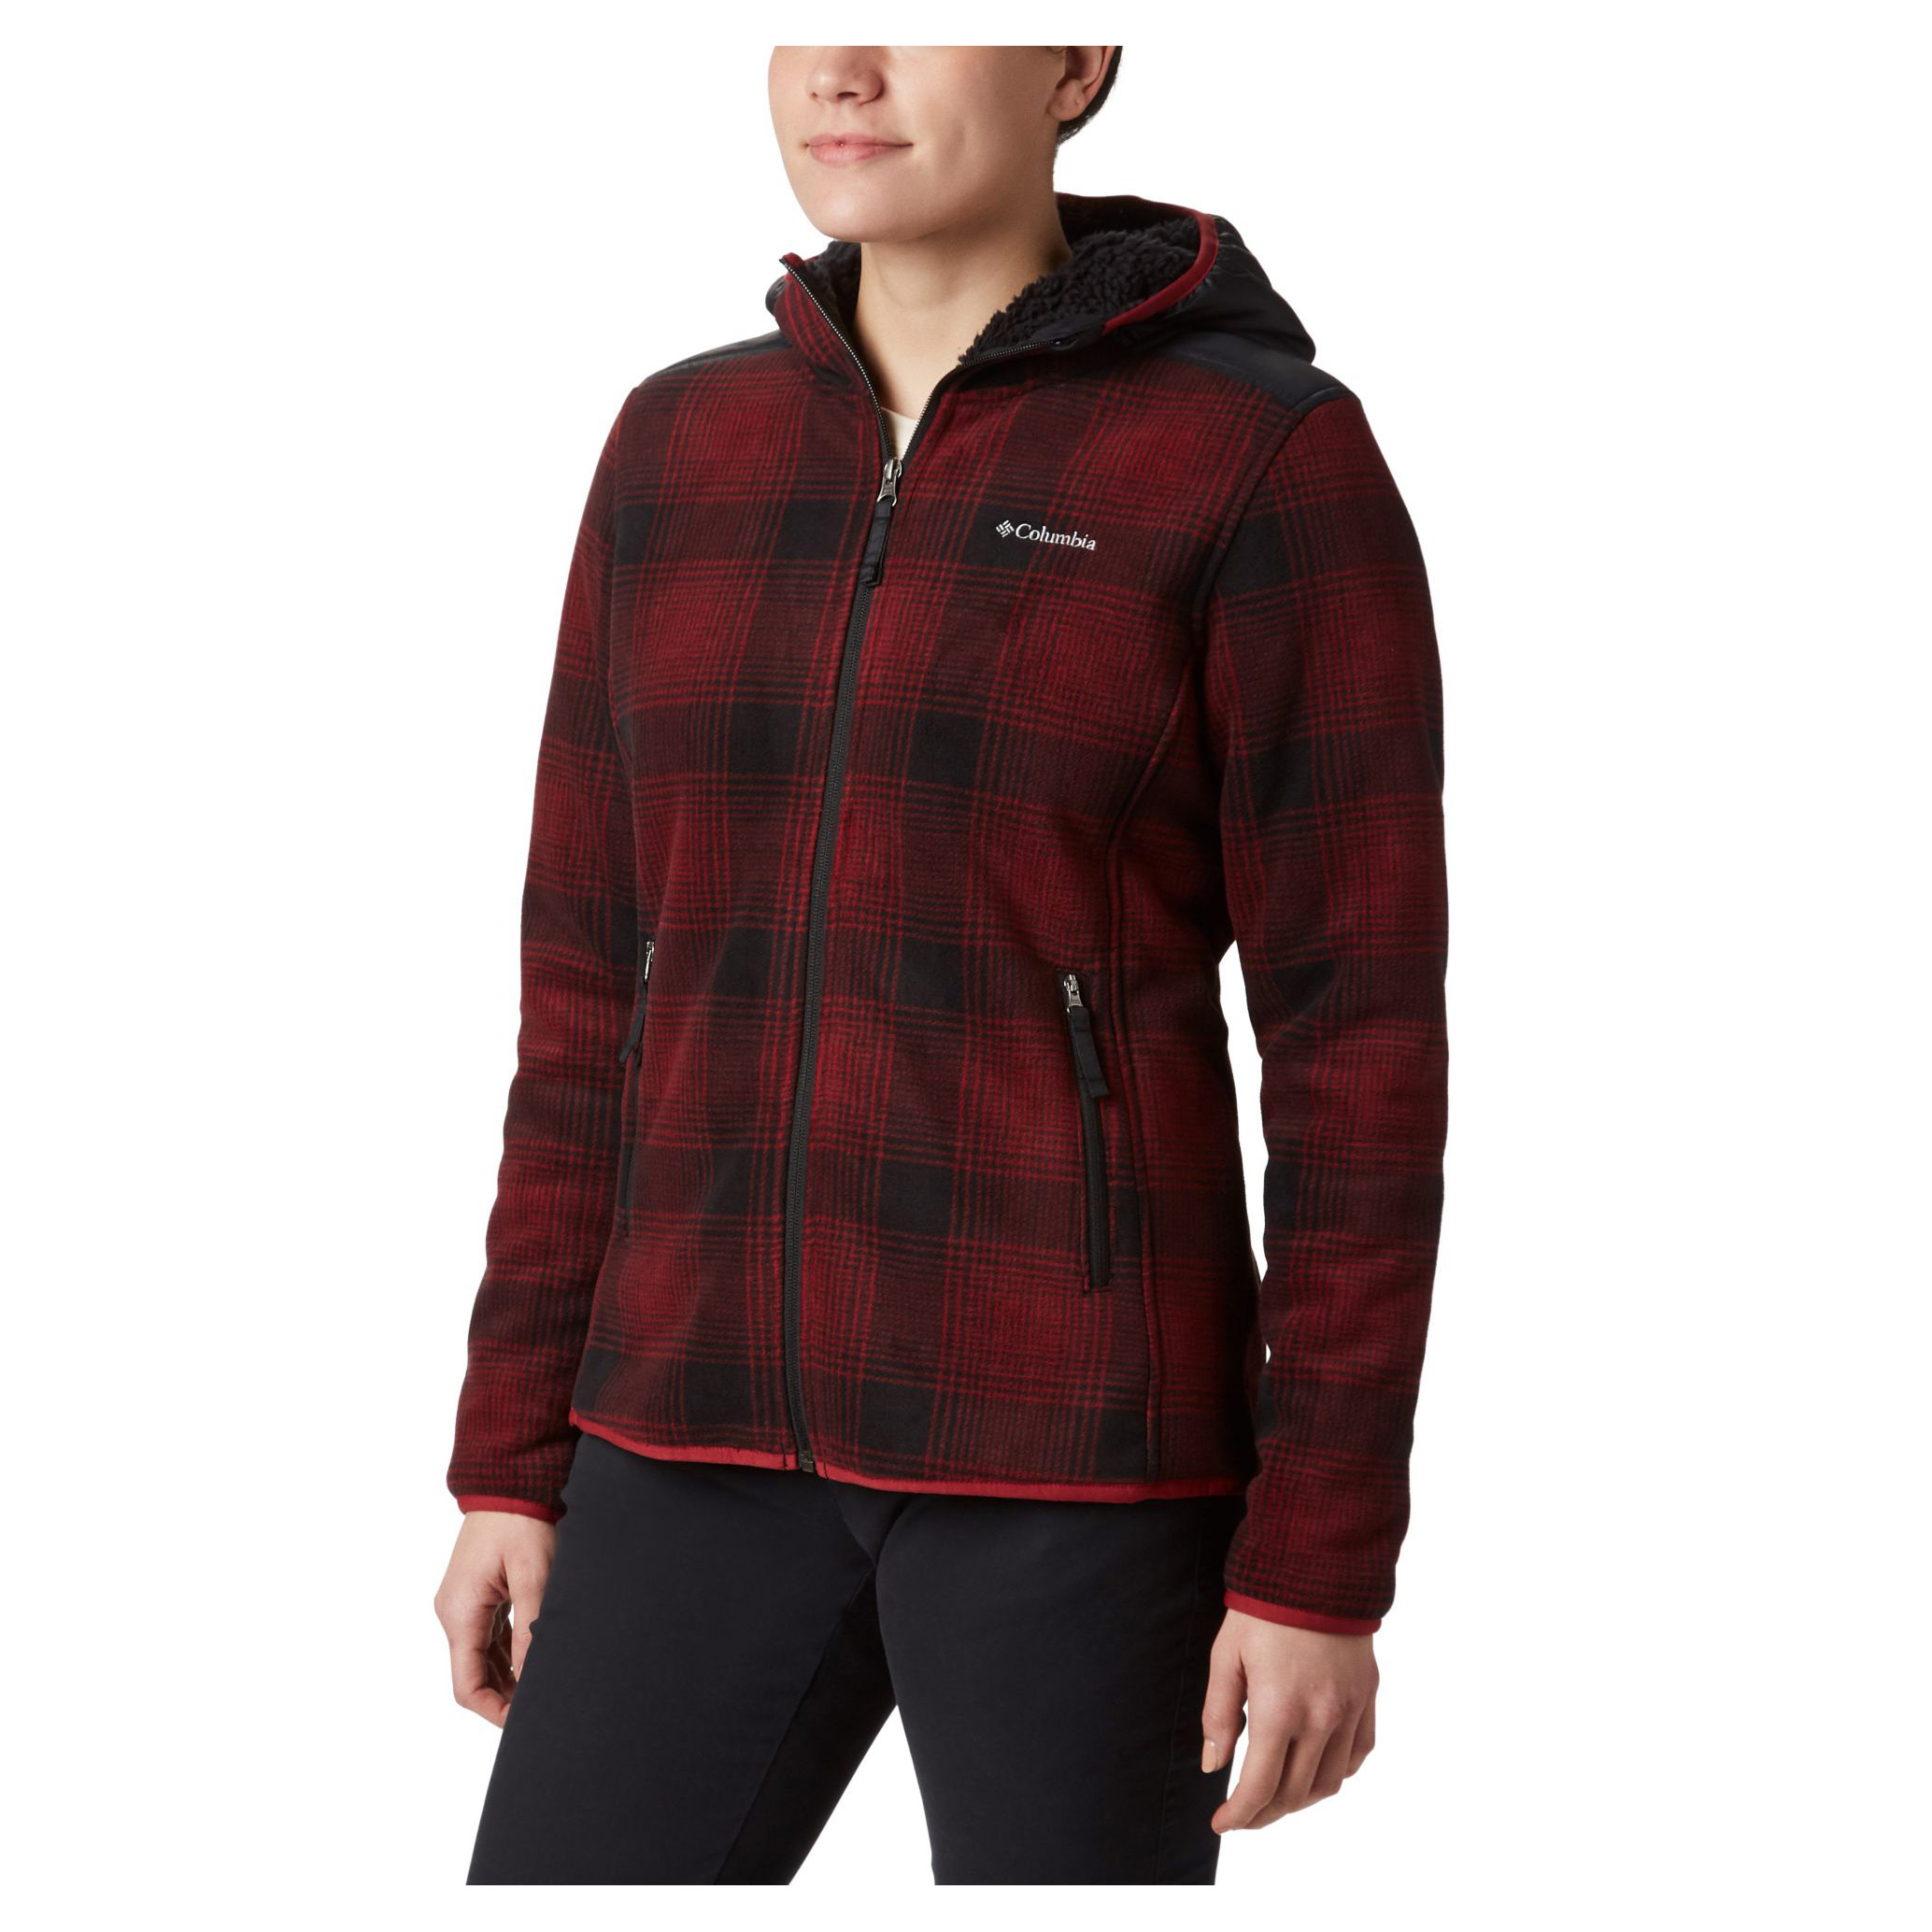 Winter Pass Print Fleece Jacket - Women's